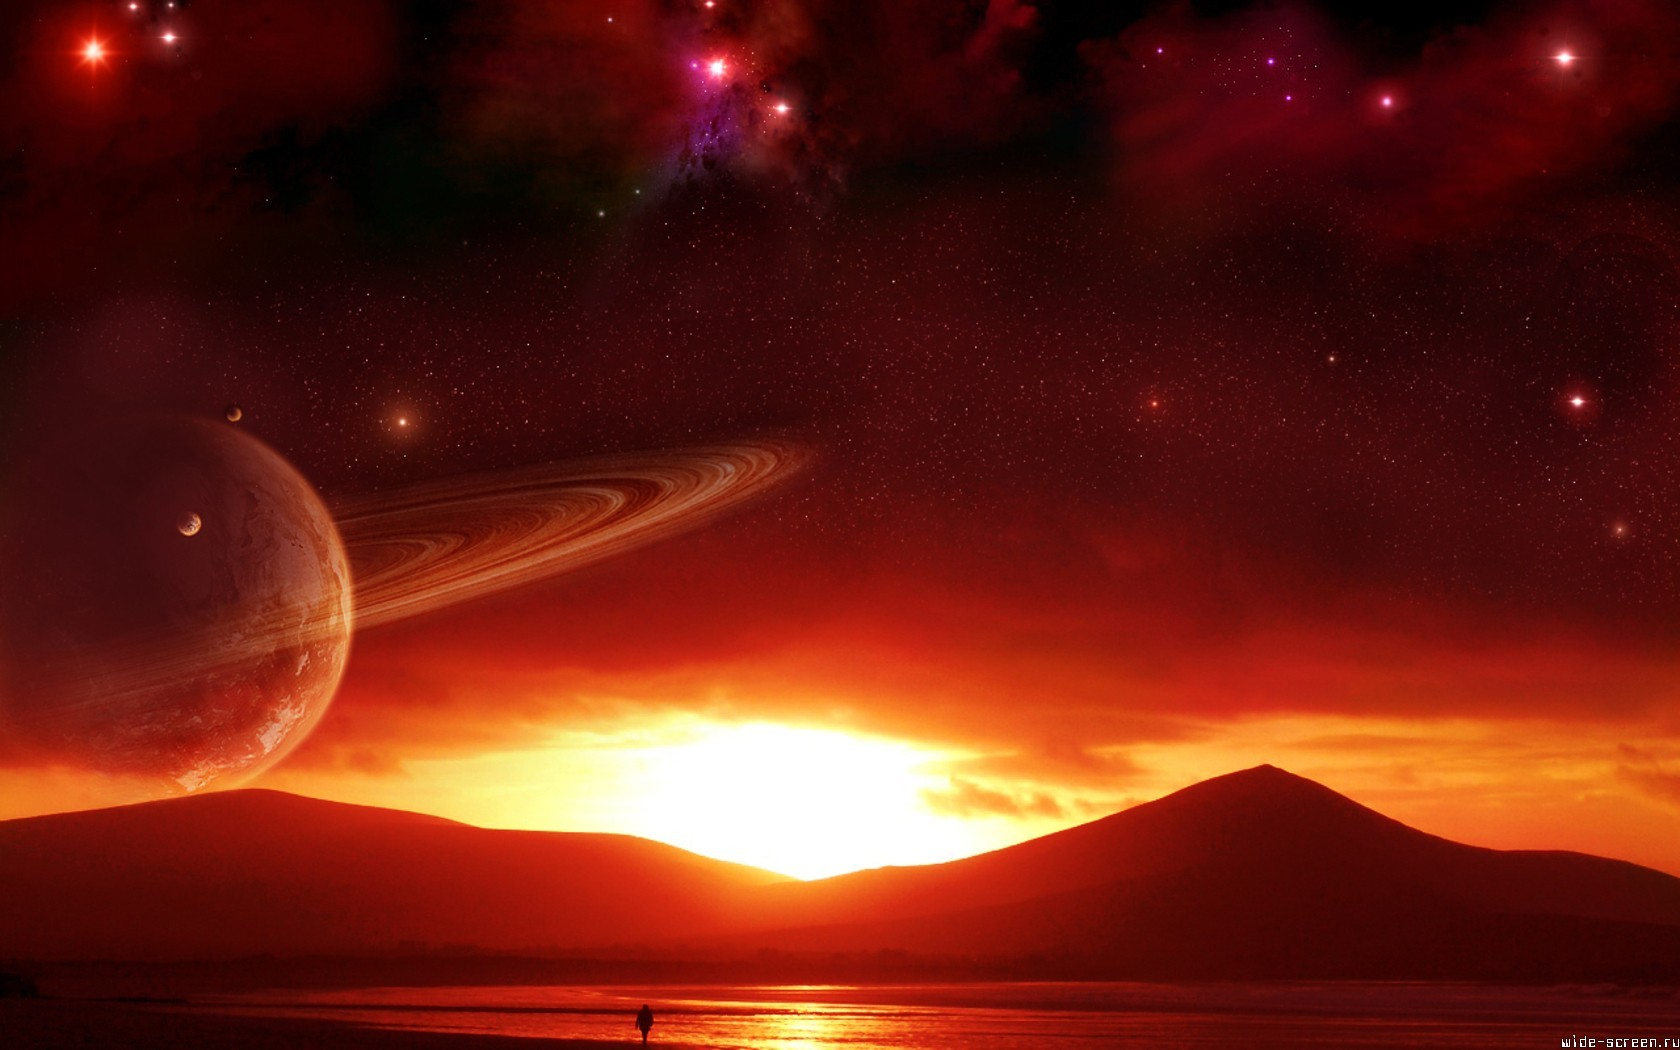 sunset Stars Mountains planets artwork HD Wallpaper